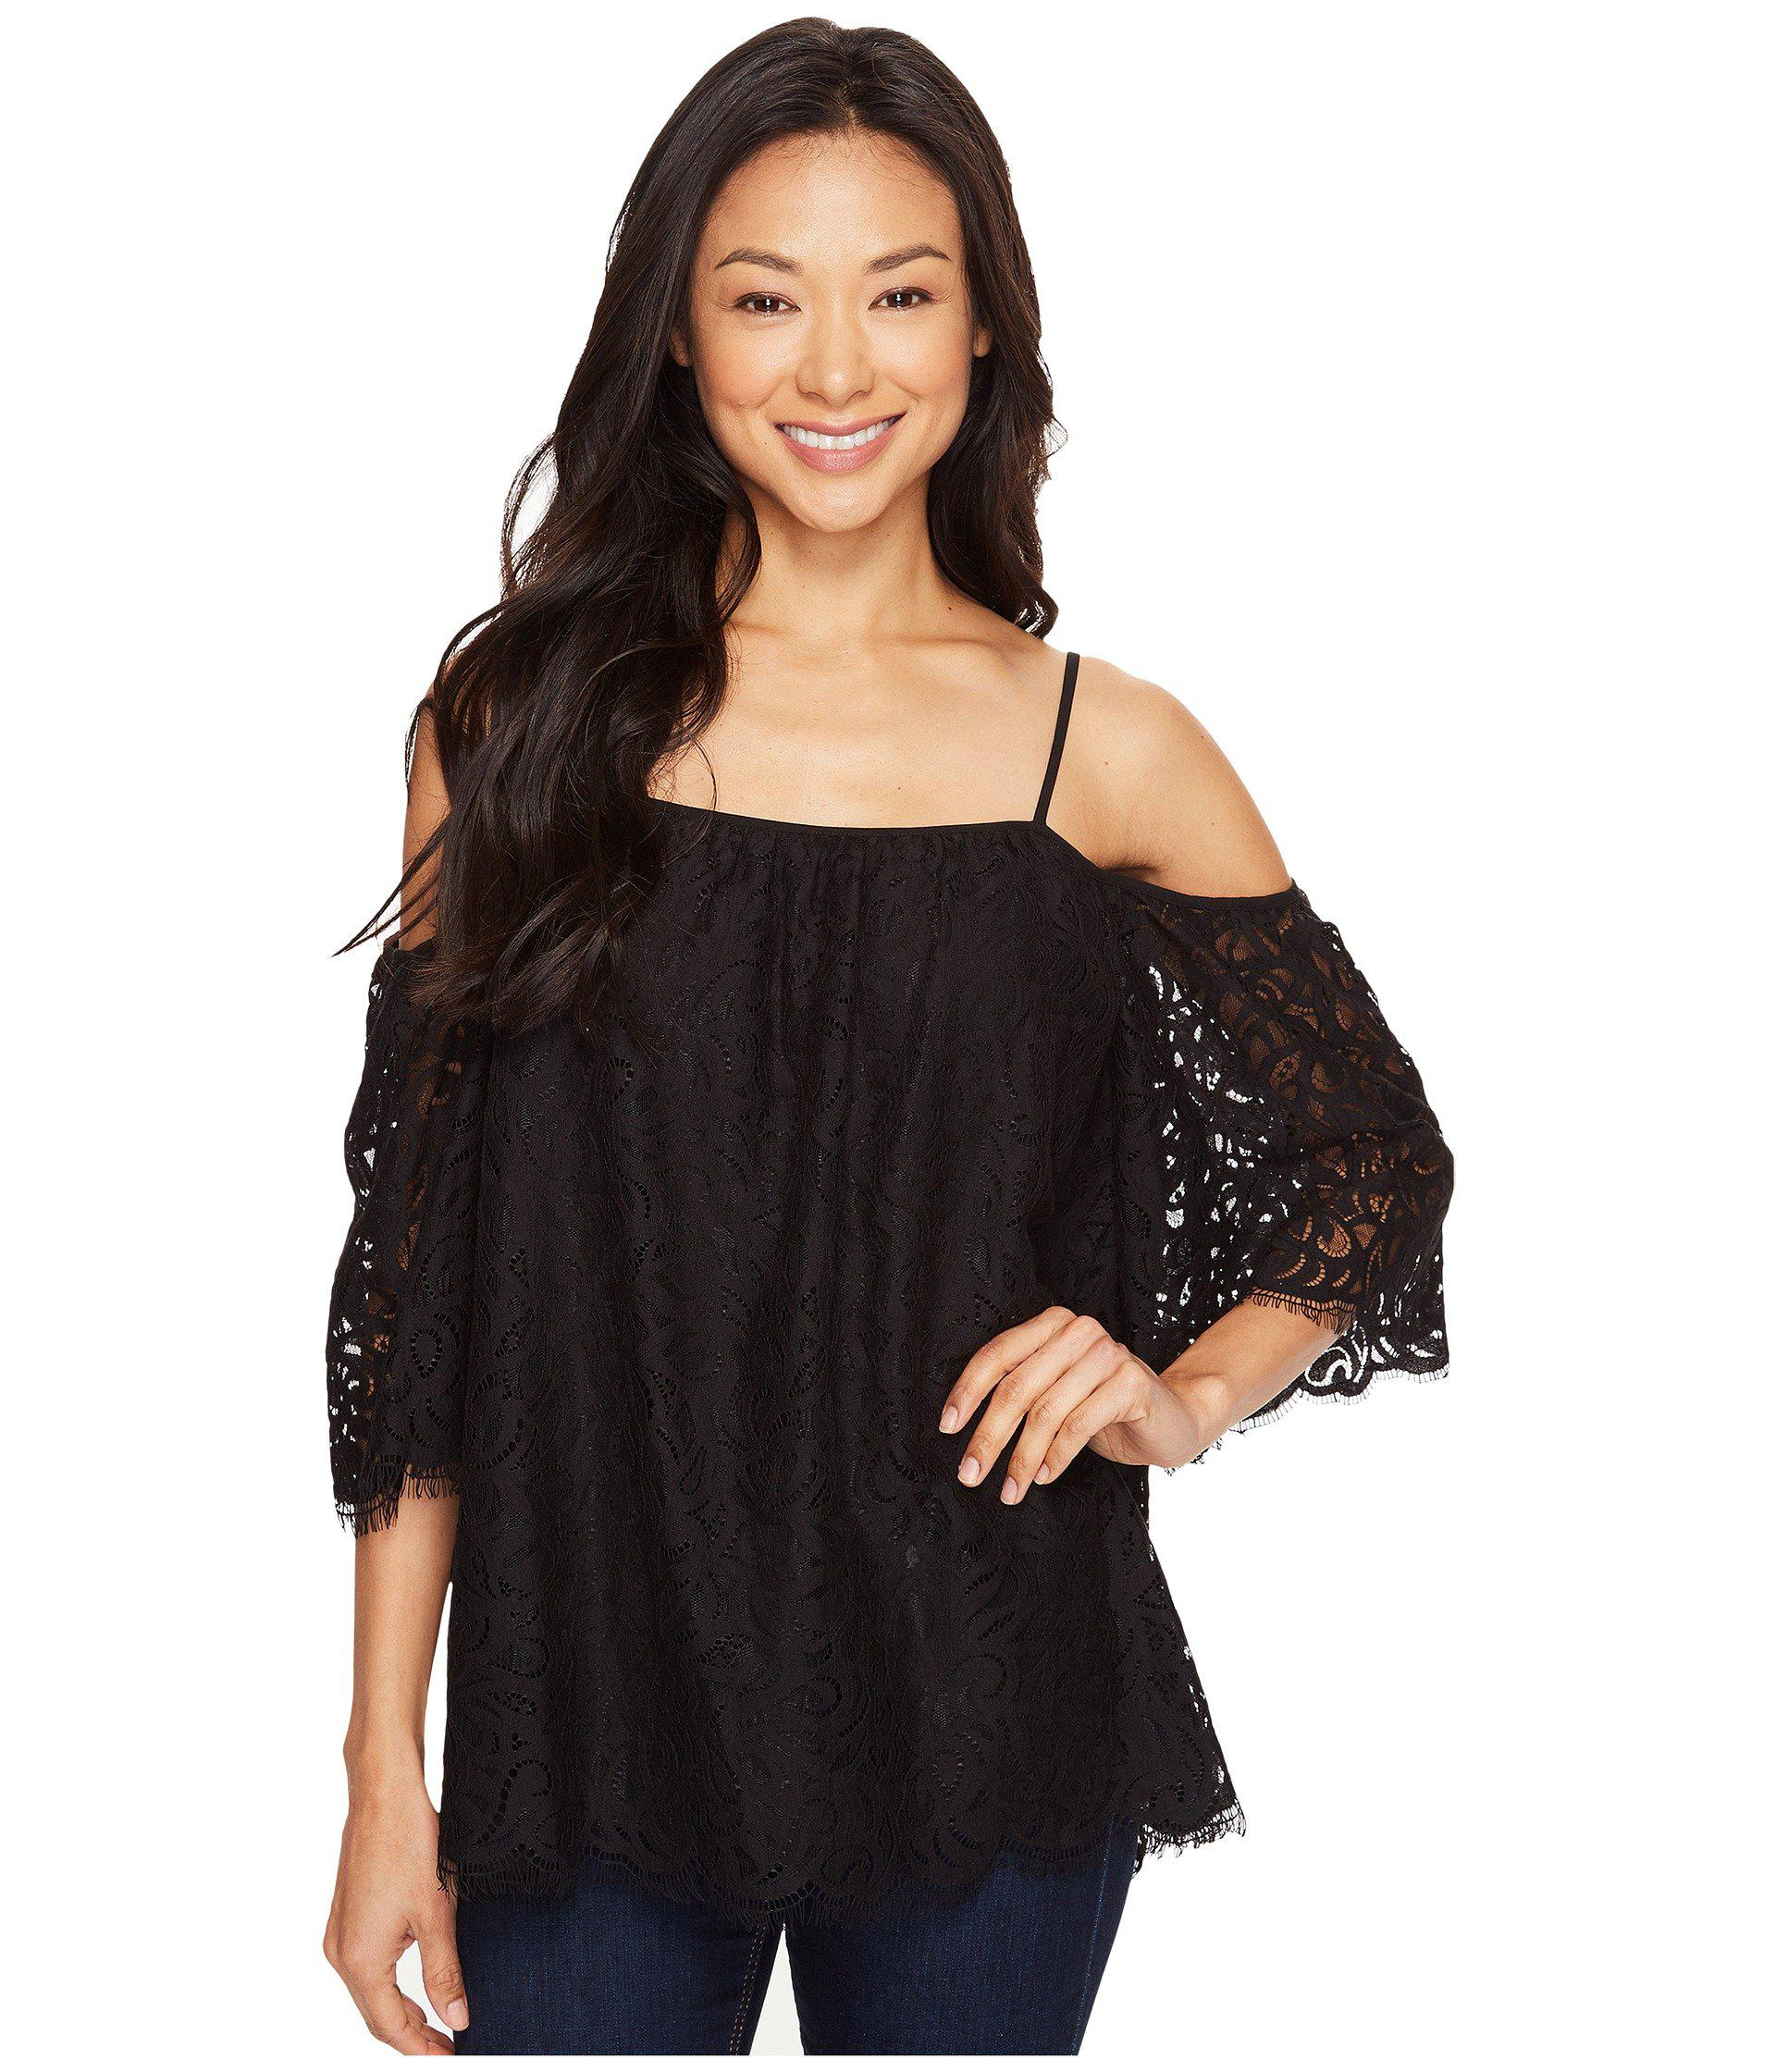 4b184ded8a8ea Vince Camuto. Women s Black Elbow Sleeve Cold-shoulder Geo Lace Blouse